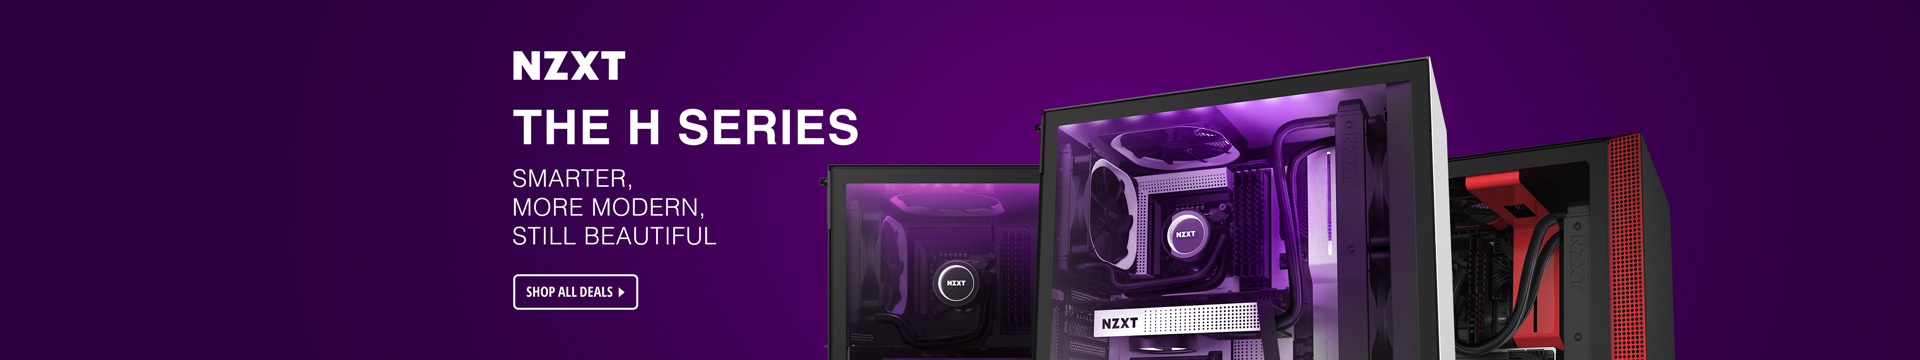 NZXT The H Series